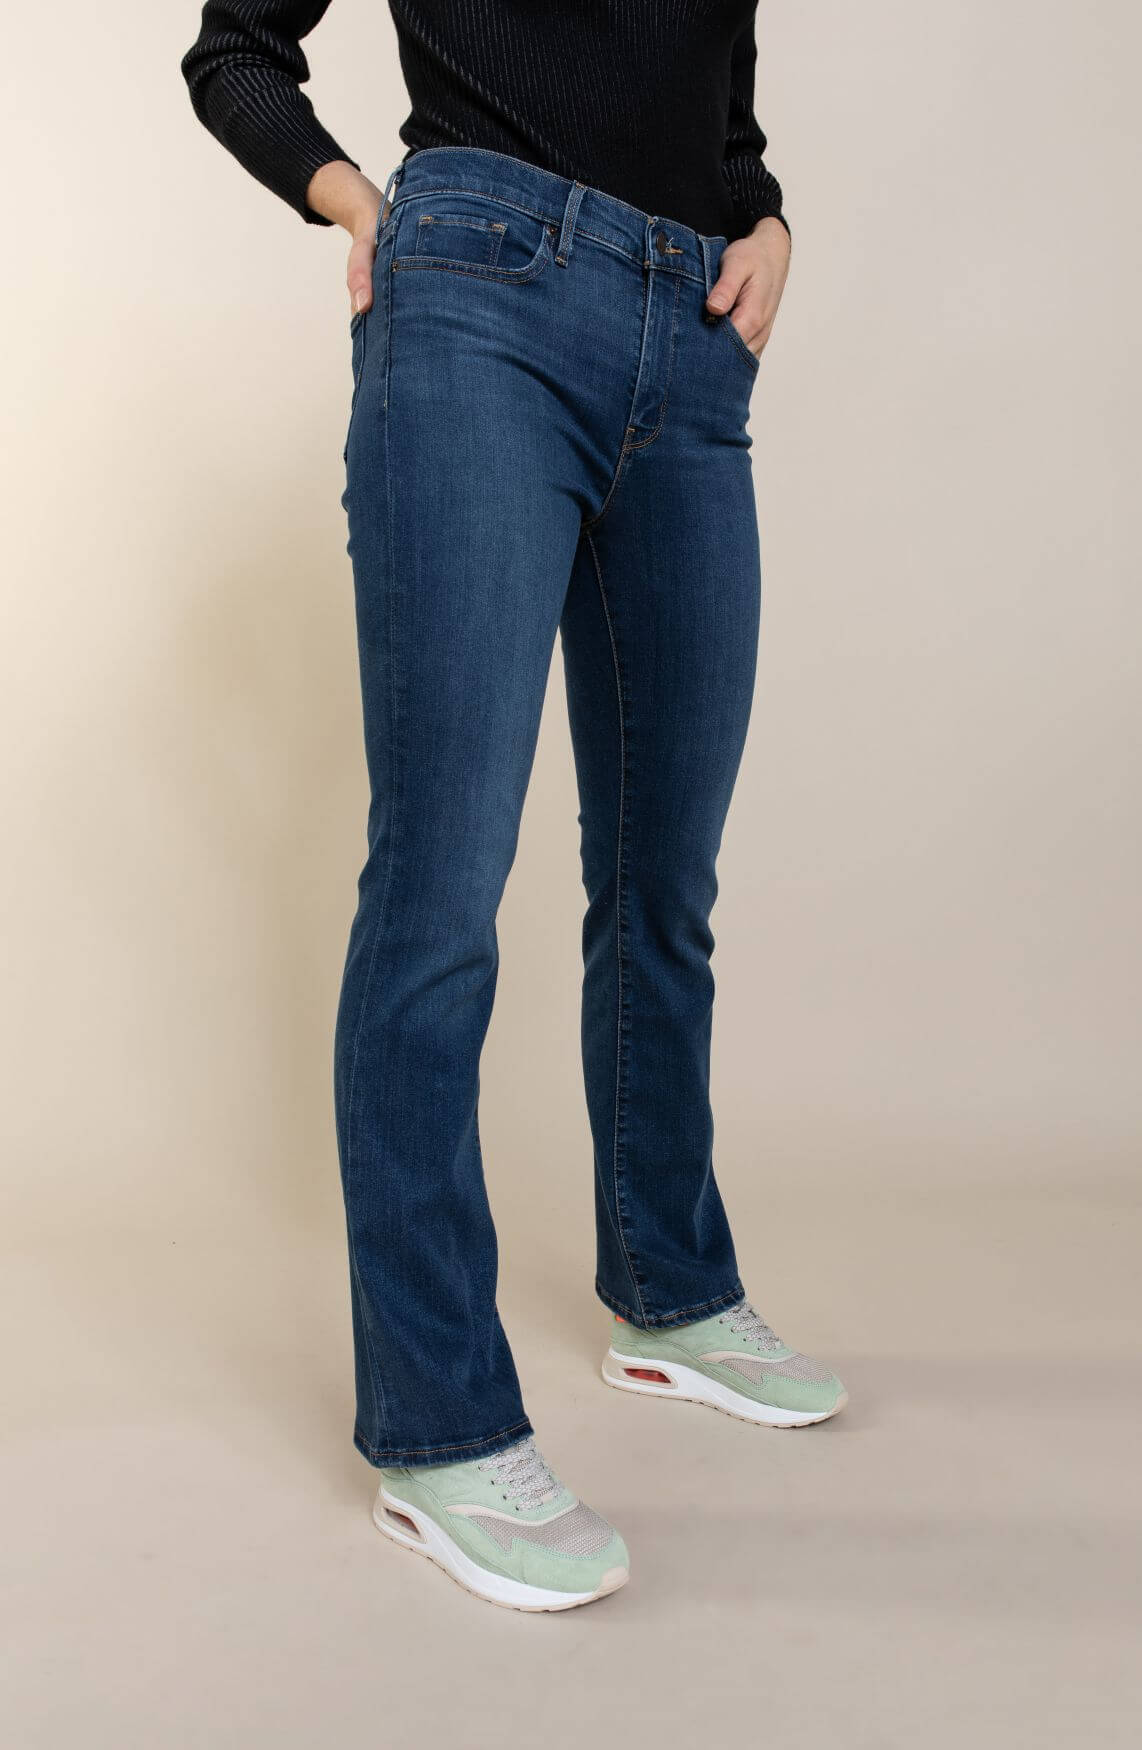 Levi's Dames 315 L32 shaping bootcut jeans Blauw